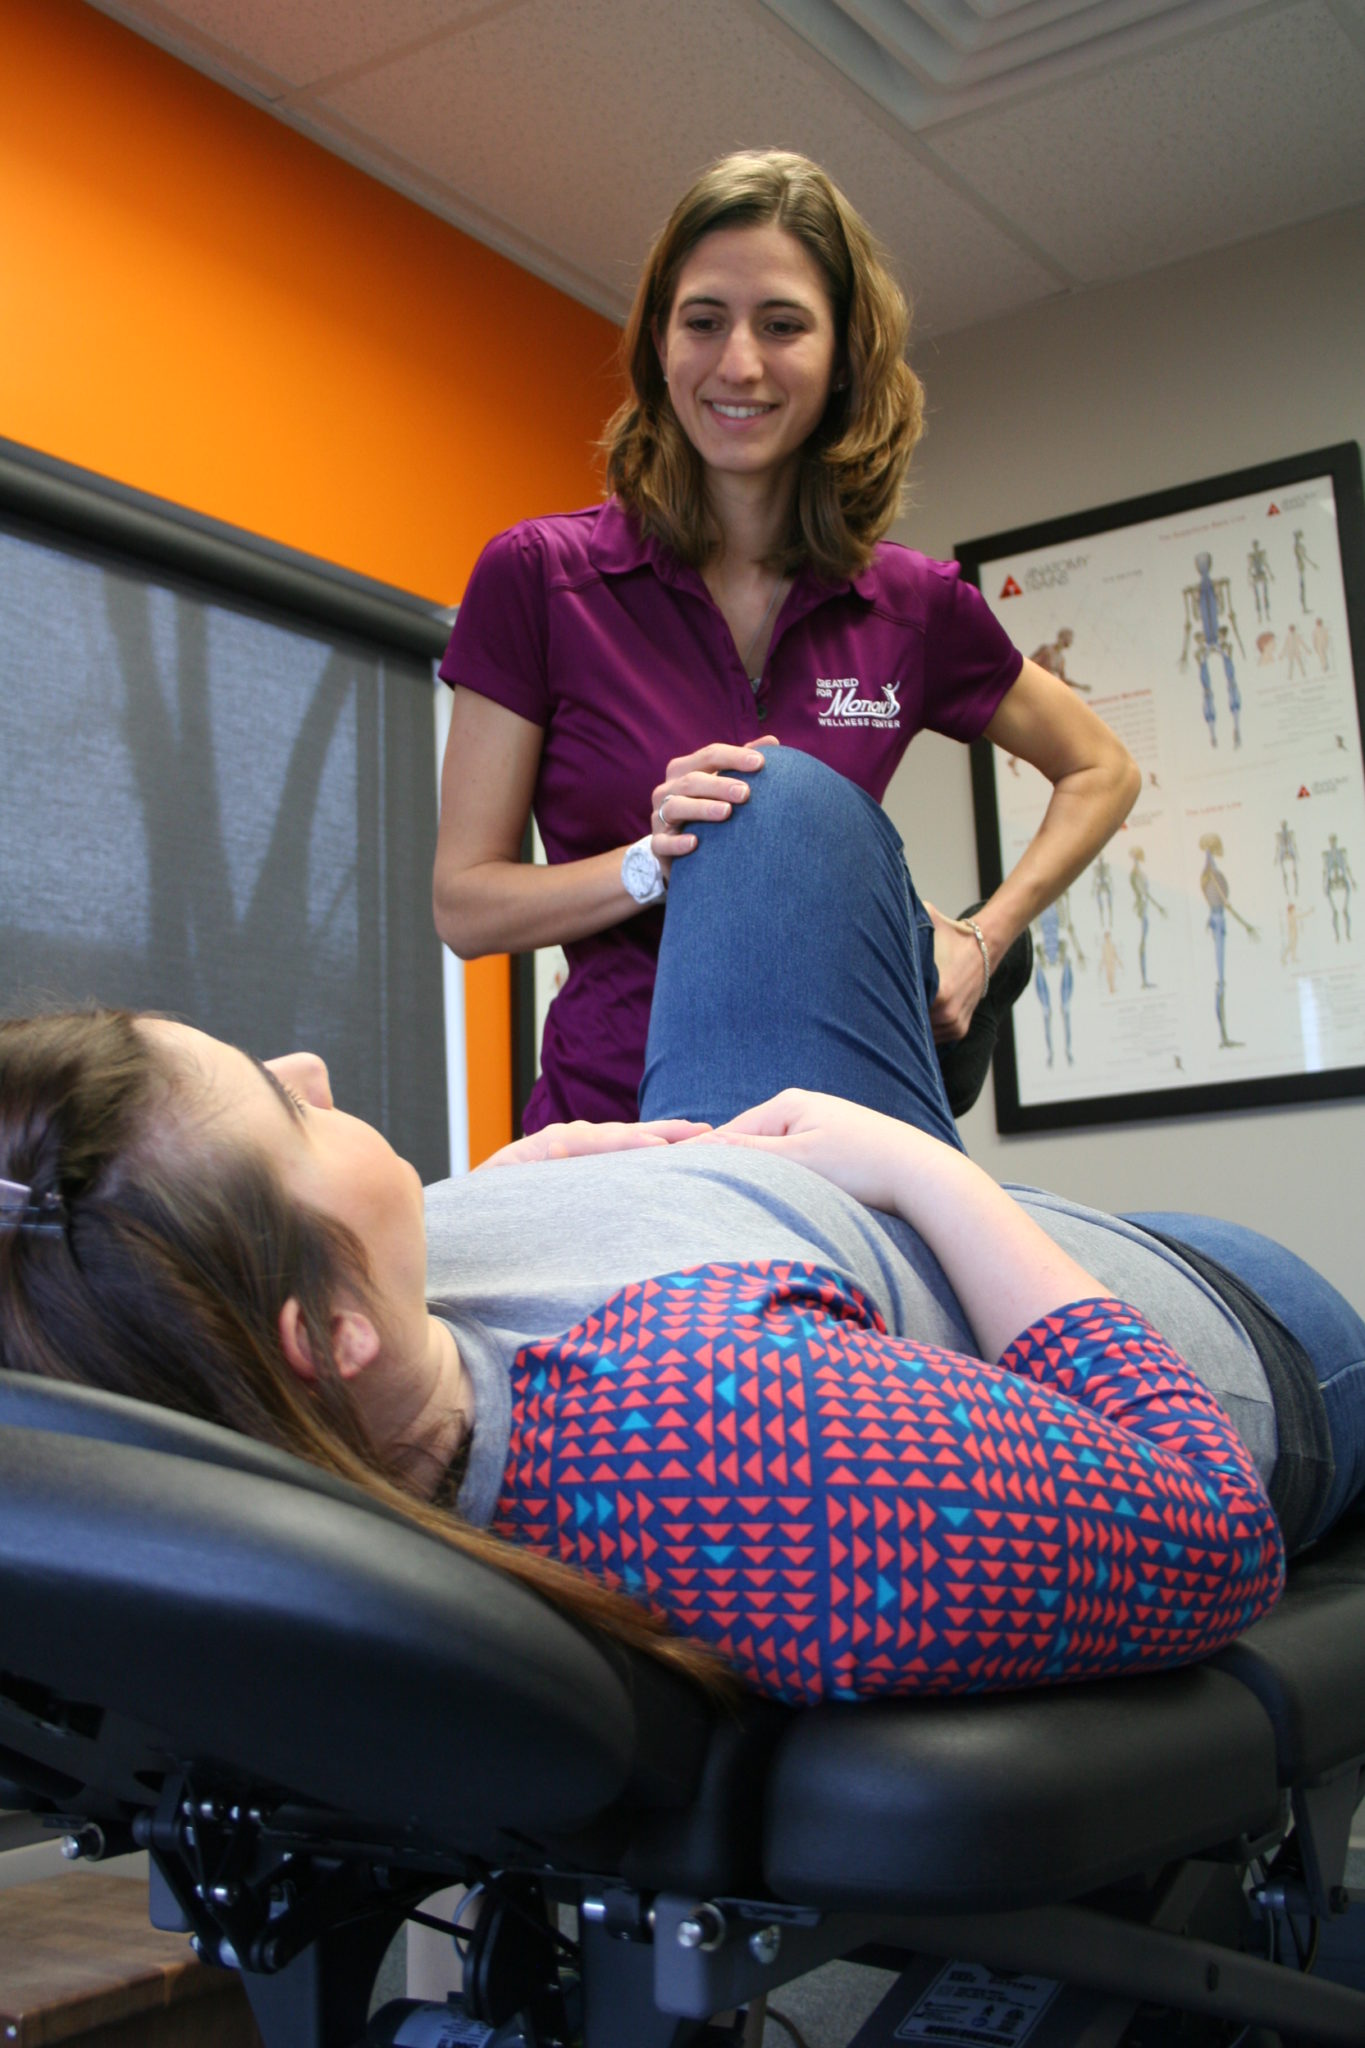 Chiropractic Adjustment–what is it?